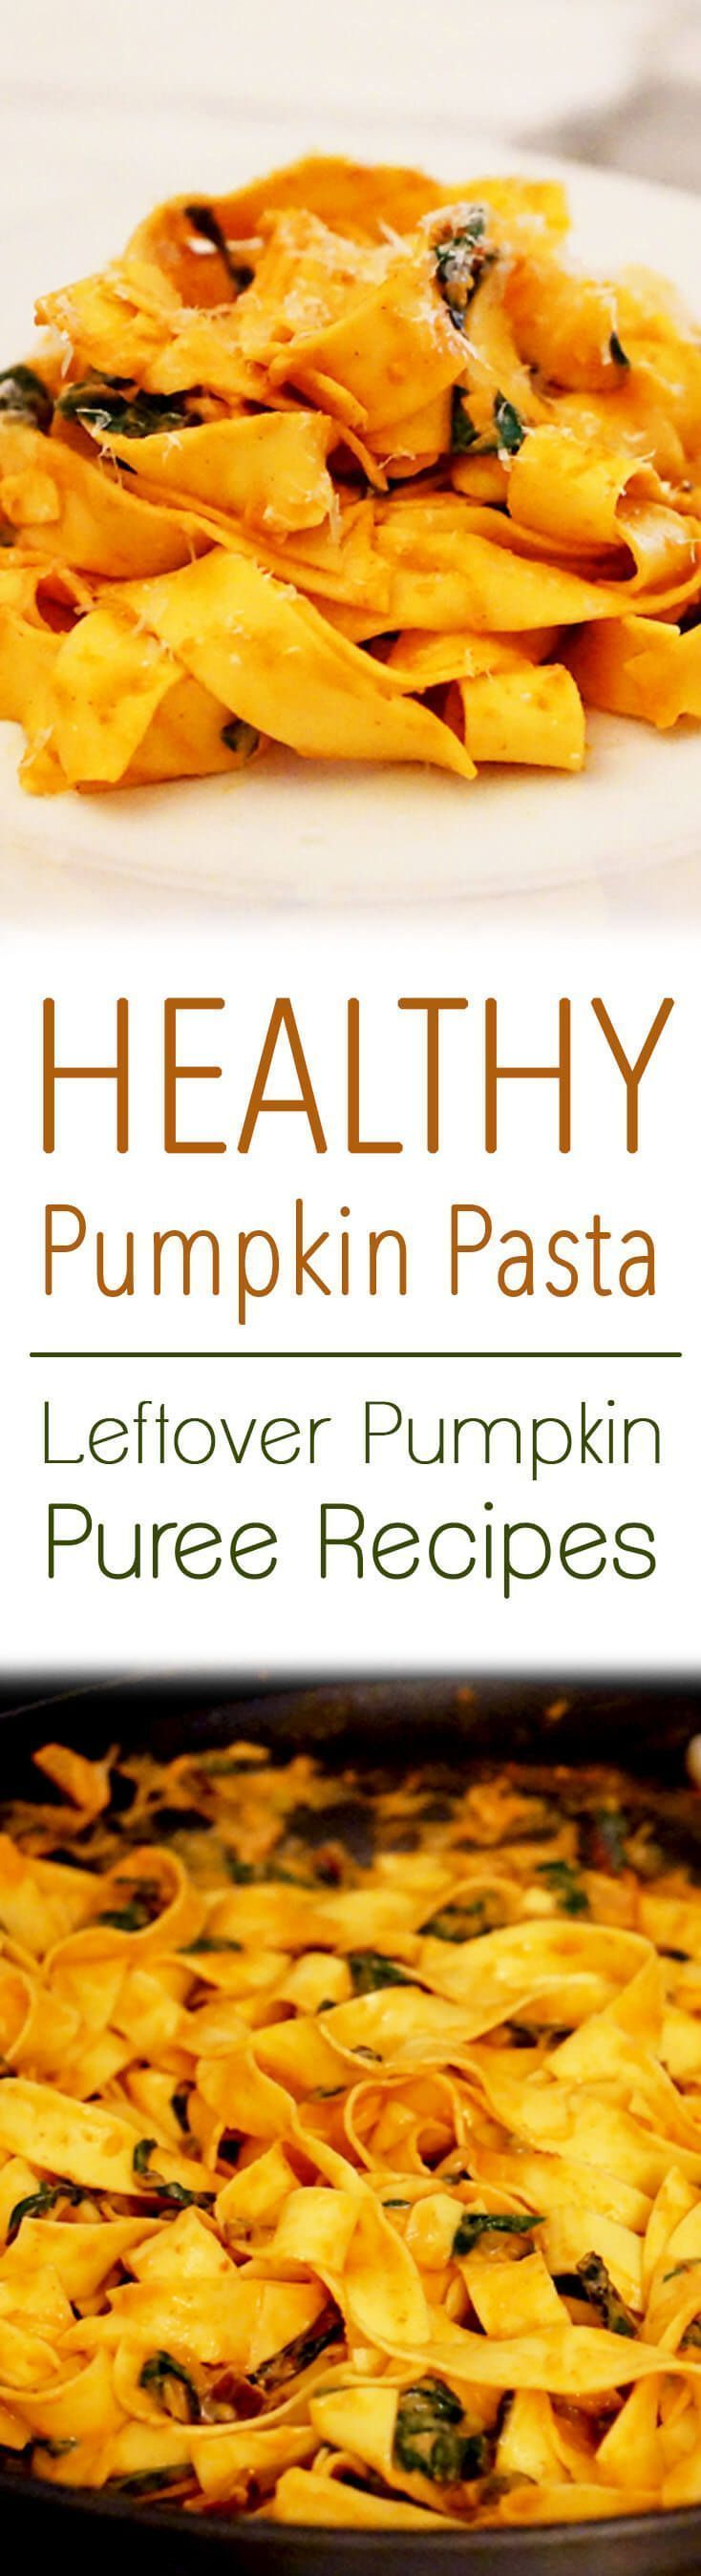 This healthy pumpkin pasta with chipotle peppers is a great way to use up leftover canned pumpkin puree after the holidays.